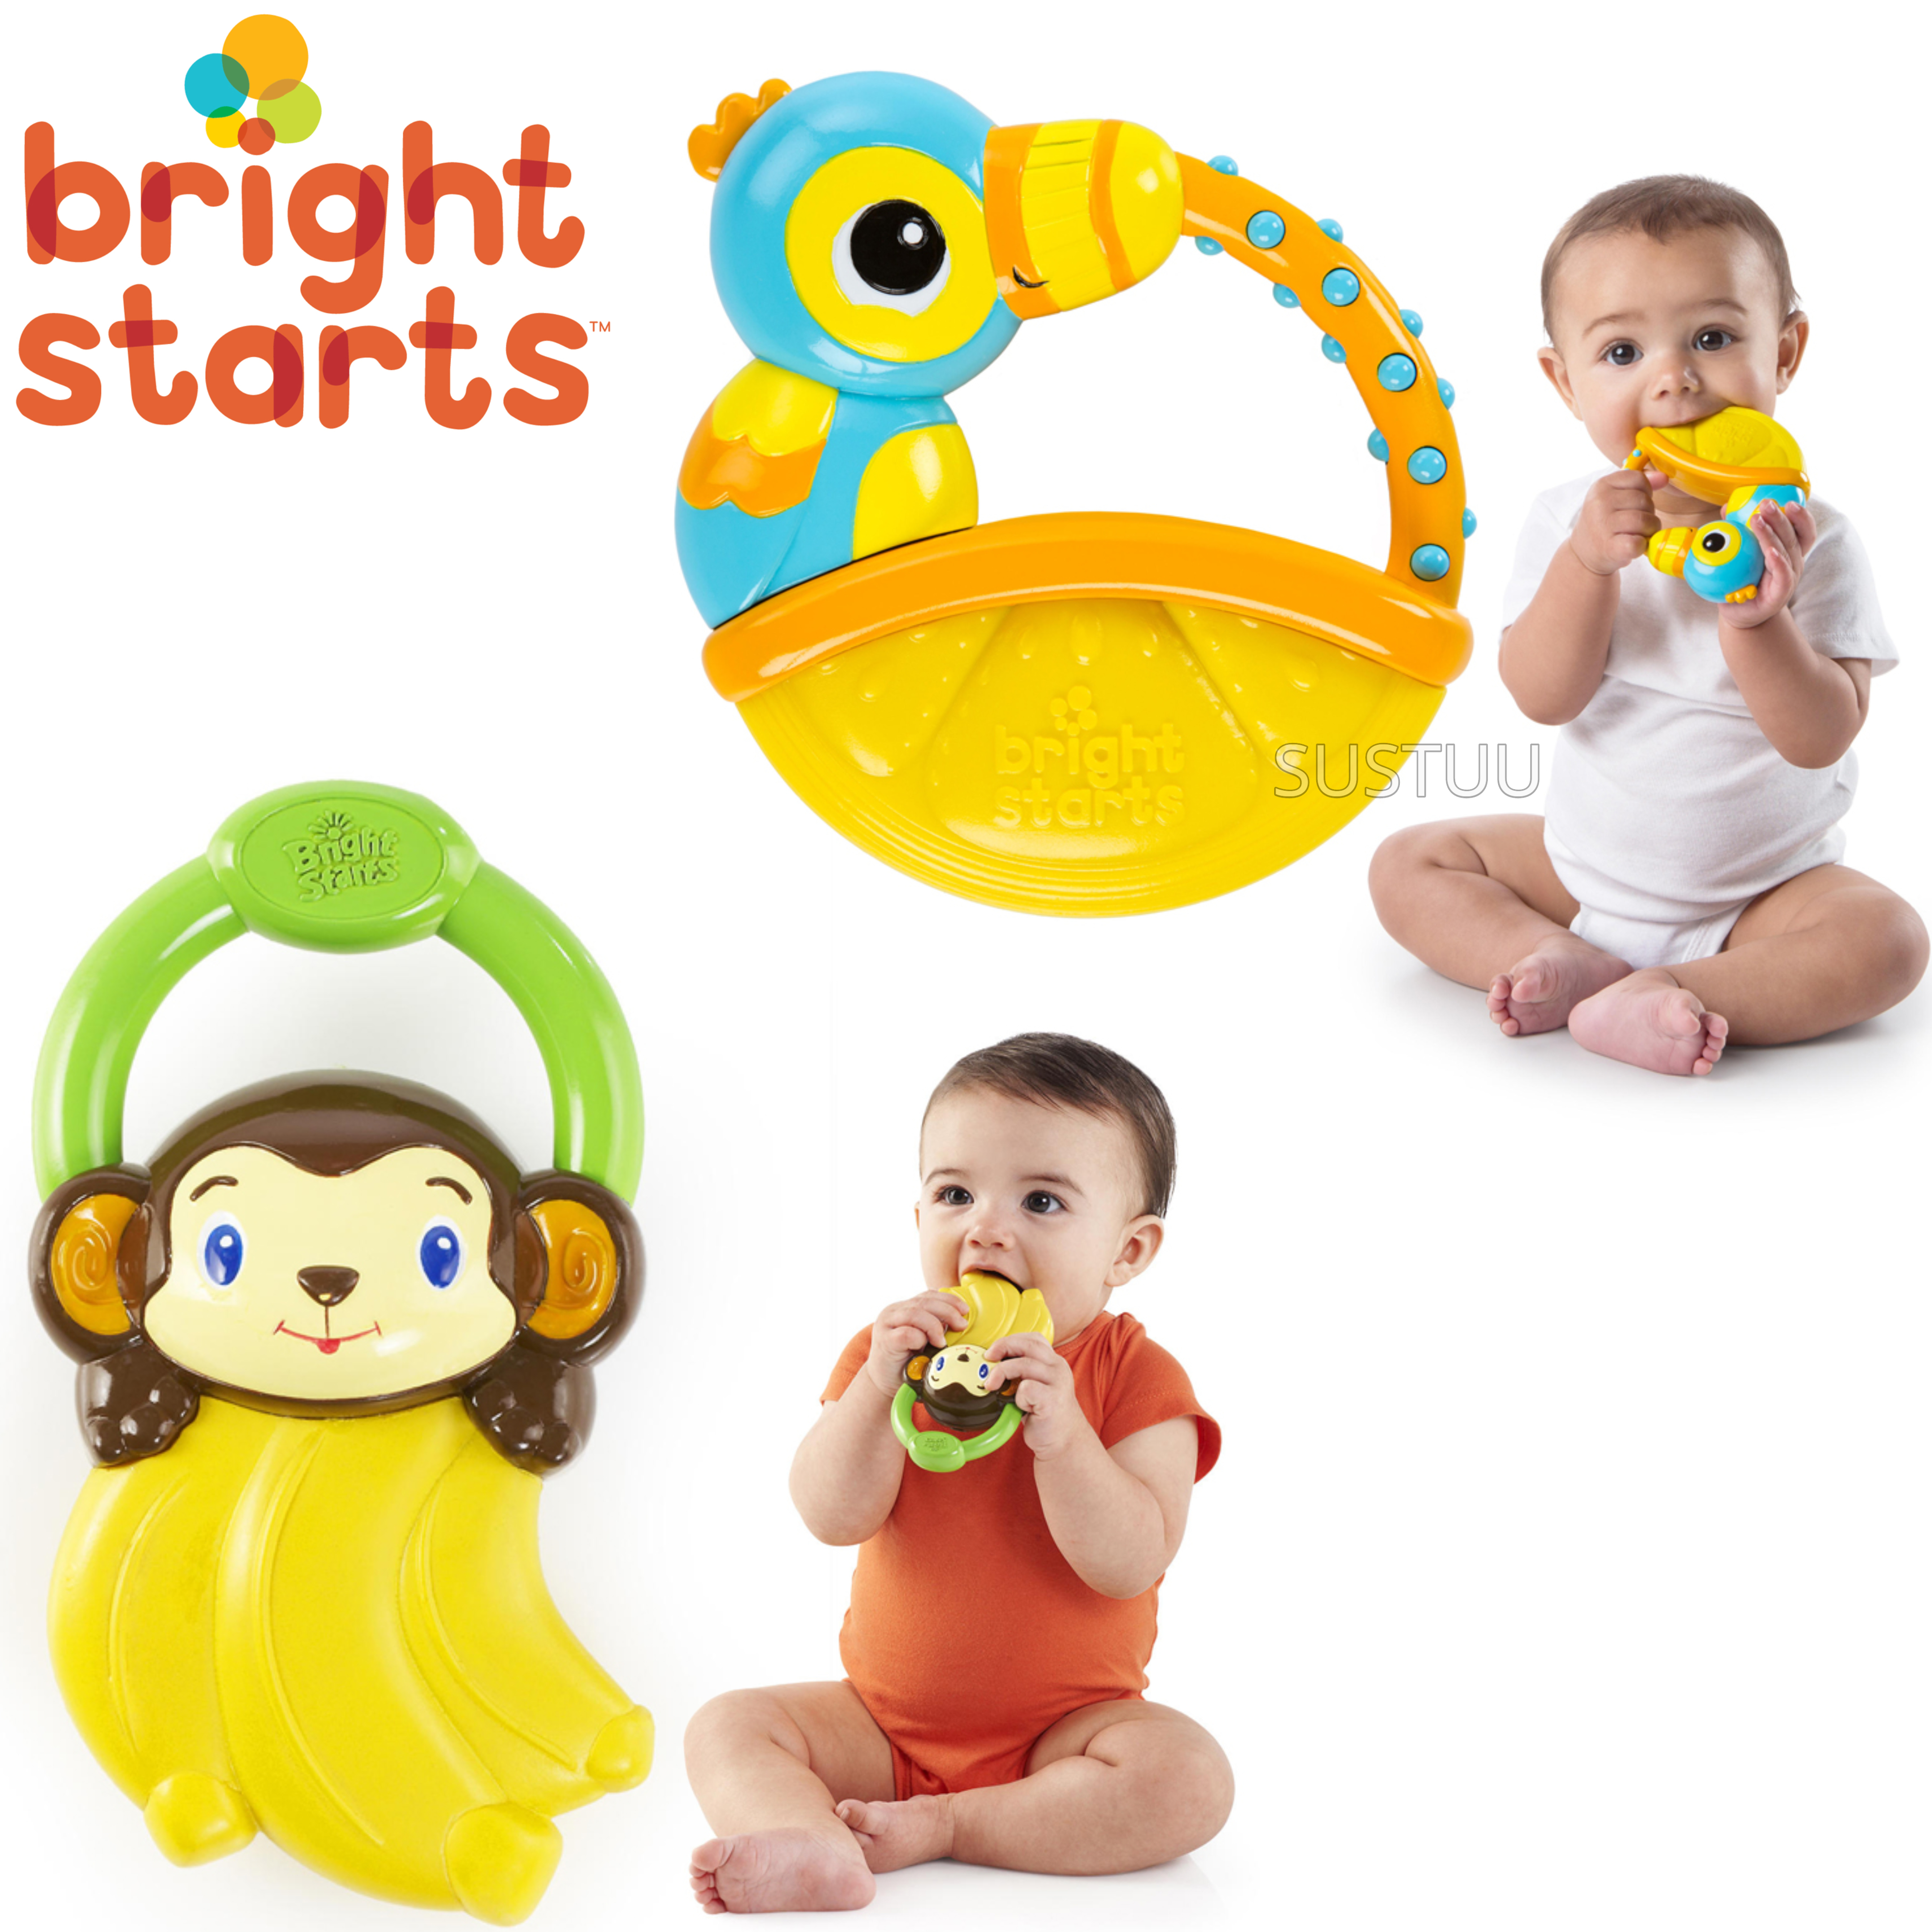 Bright Starts Vibrating Teethers Assortment | Baby/Toddler's Gummy Textured Dummy